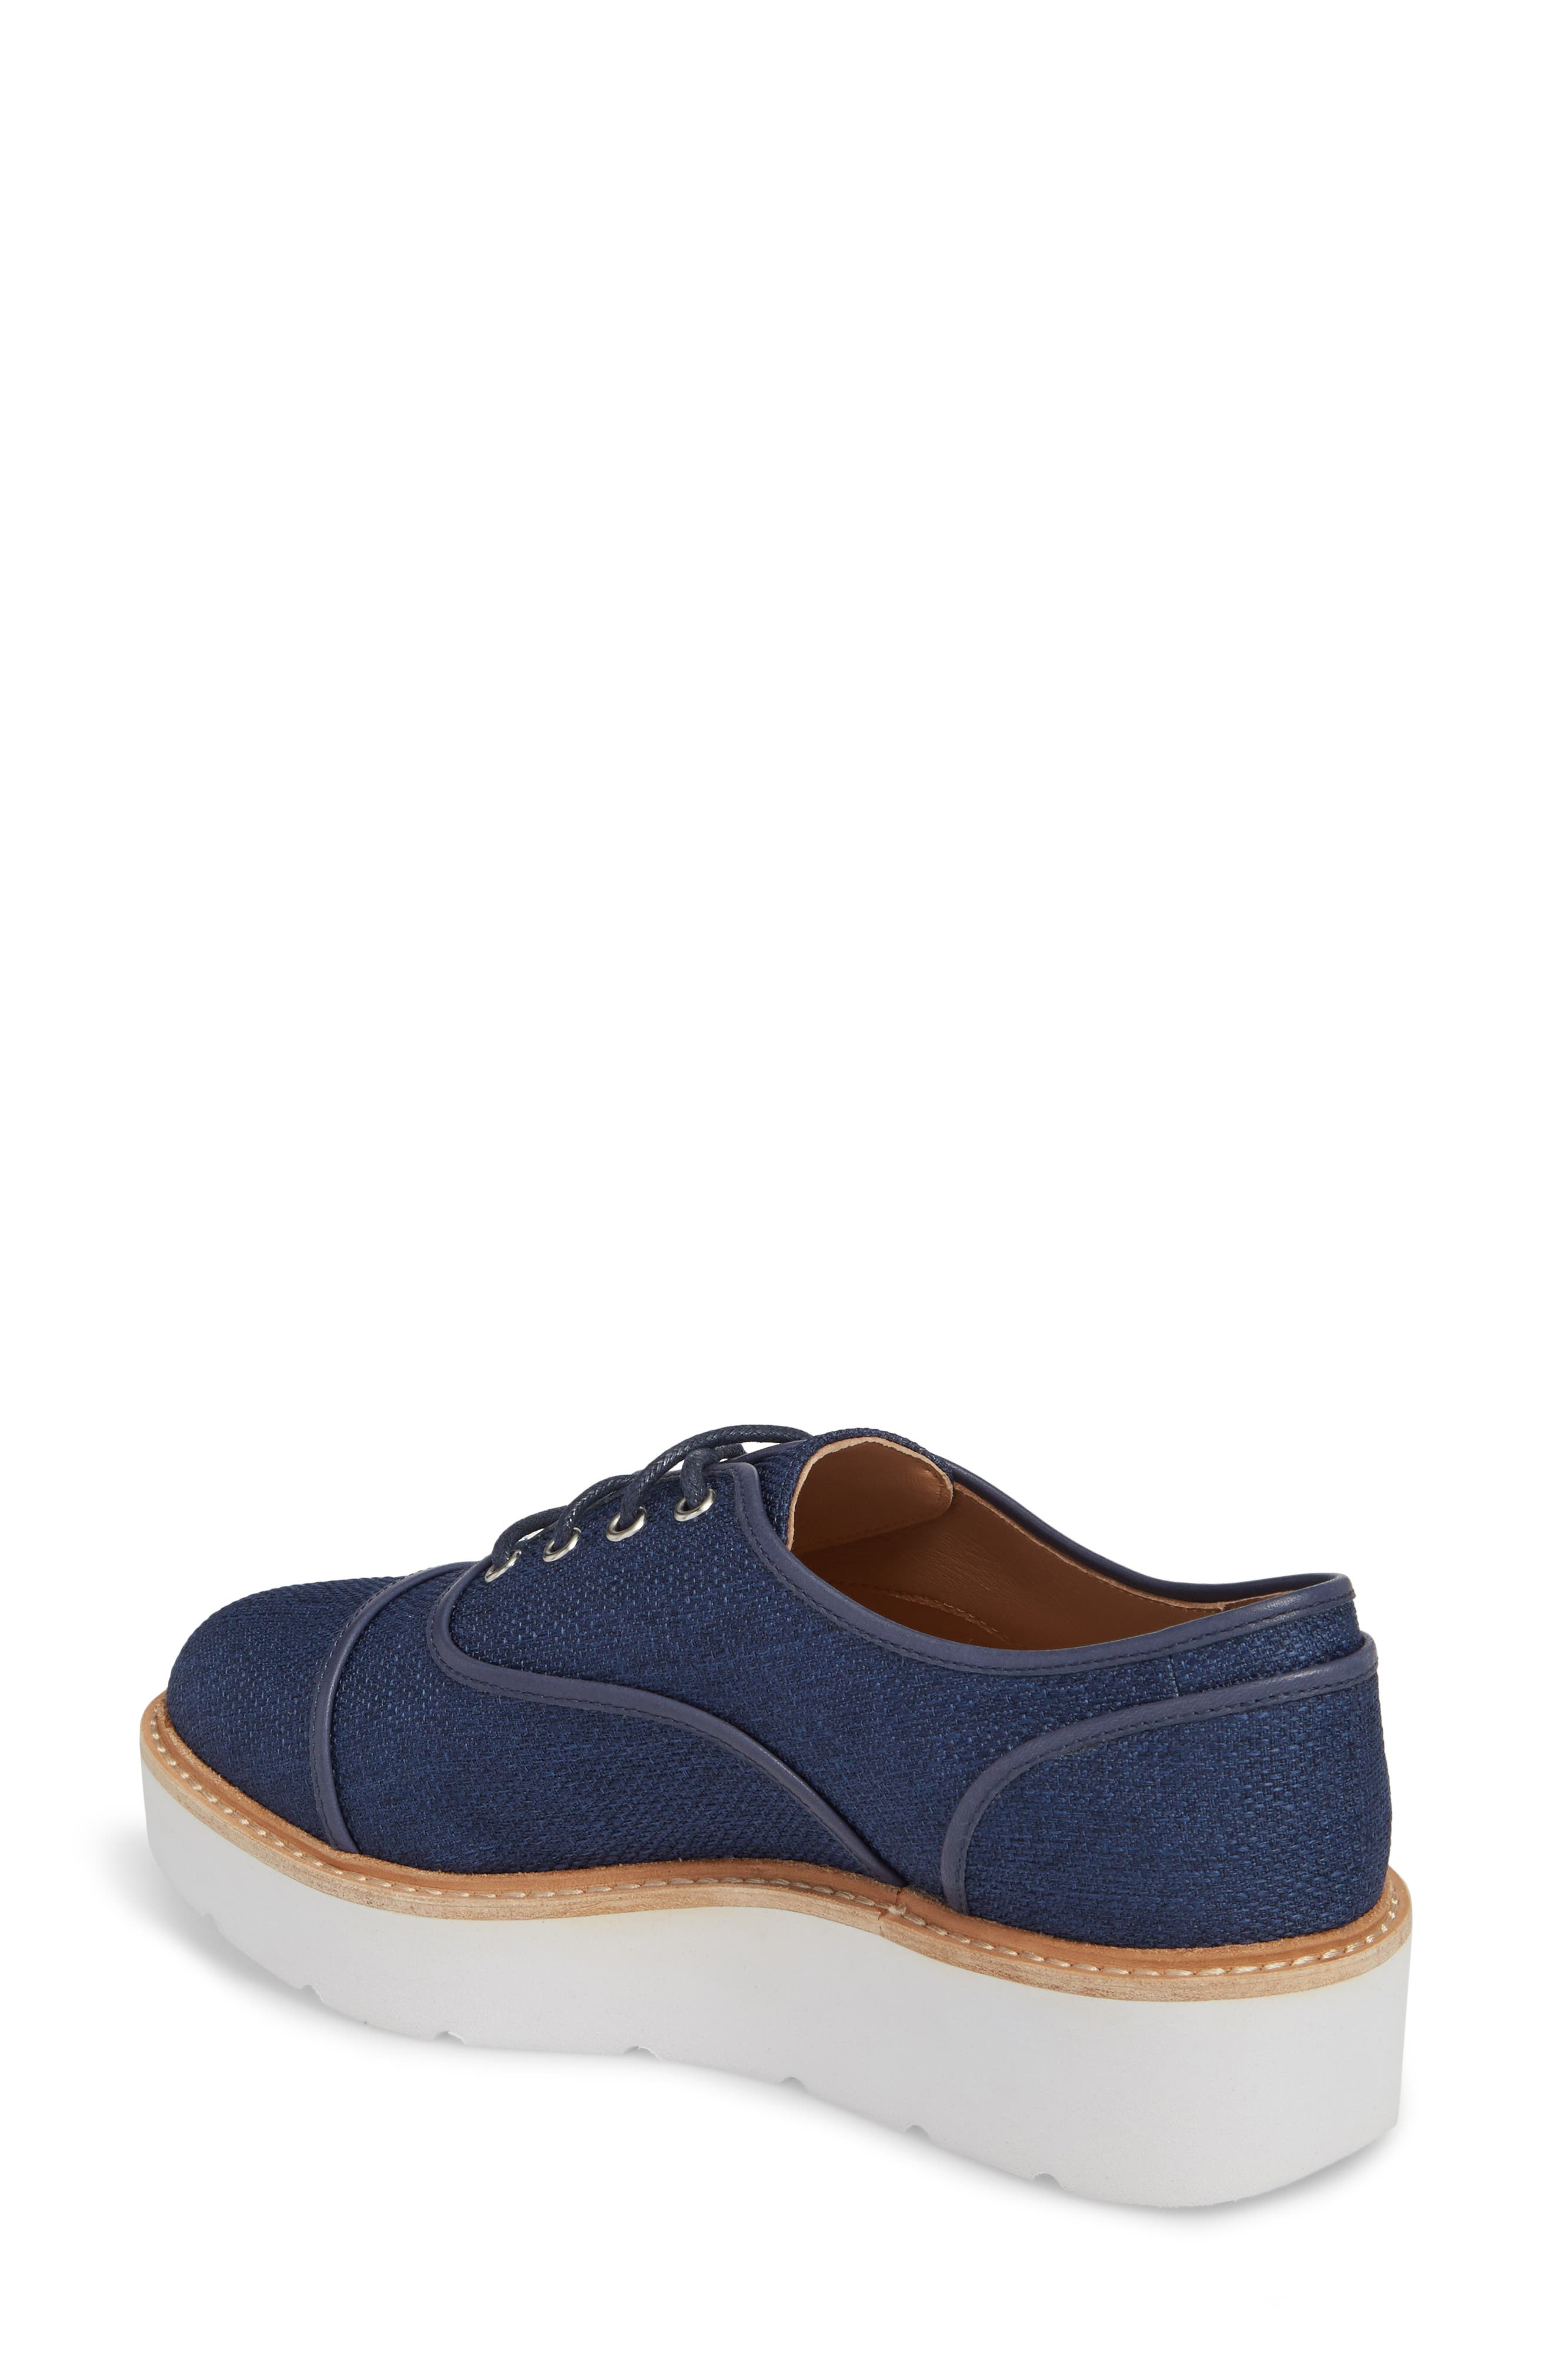 Mavis Cap Toe Platform Sneaker,                             Alternate thumbnail 2, color,                             Blue Fabric